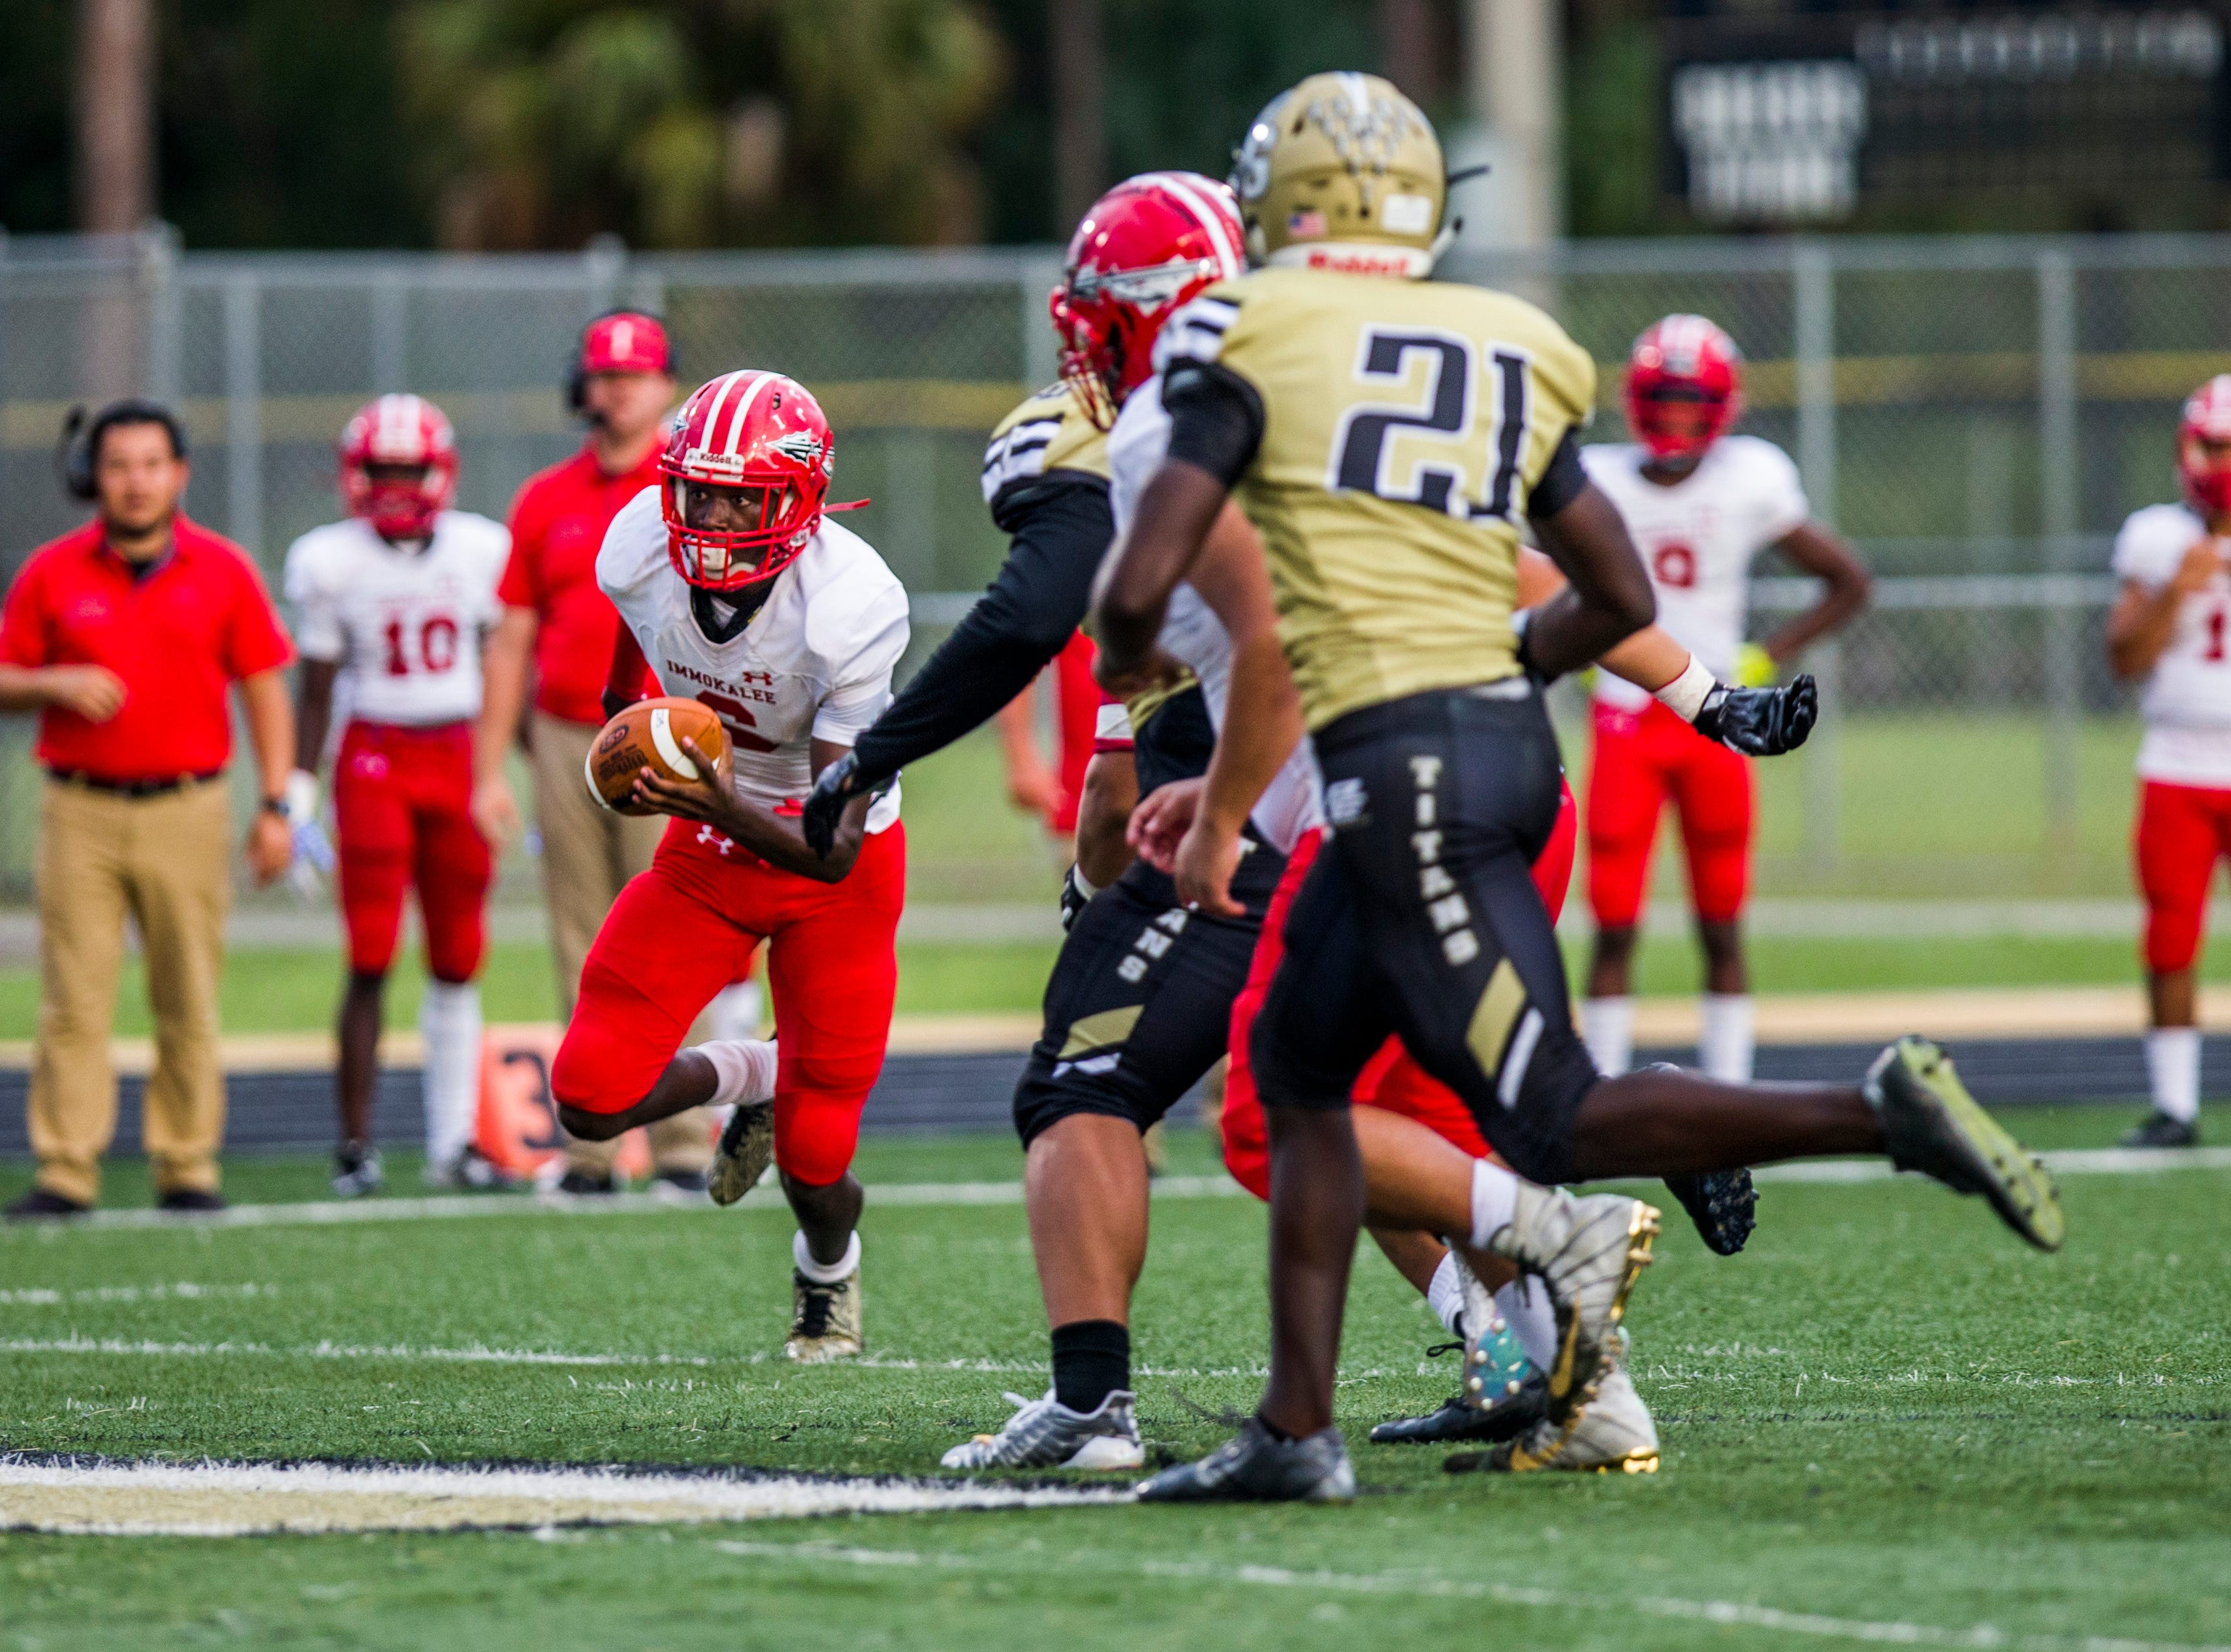 Immokalee wide receiver Joseph Elischama runs the ball during the game against Golden Gate at Golden Gate High School on Friday, Aug. 24, 2018.